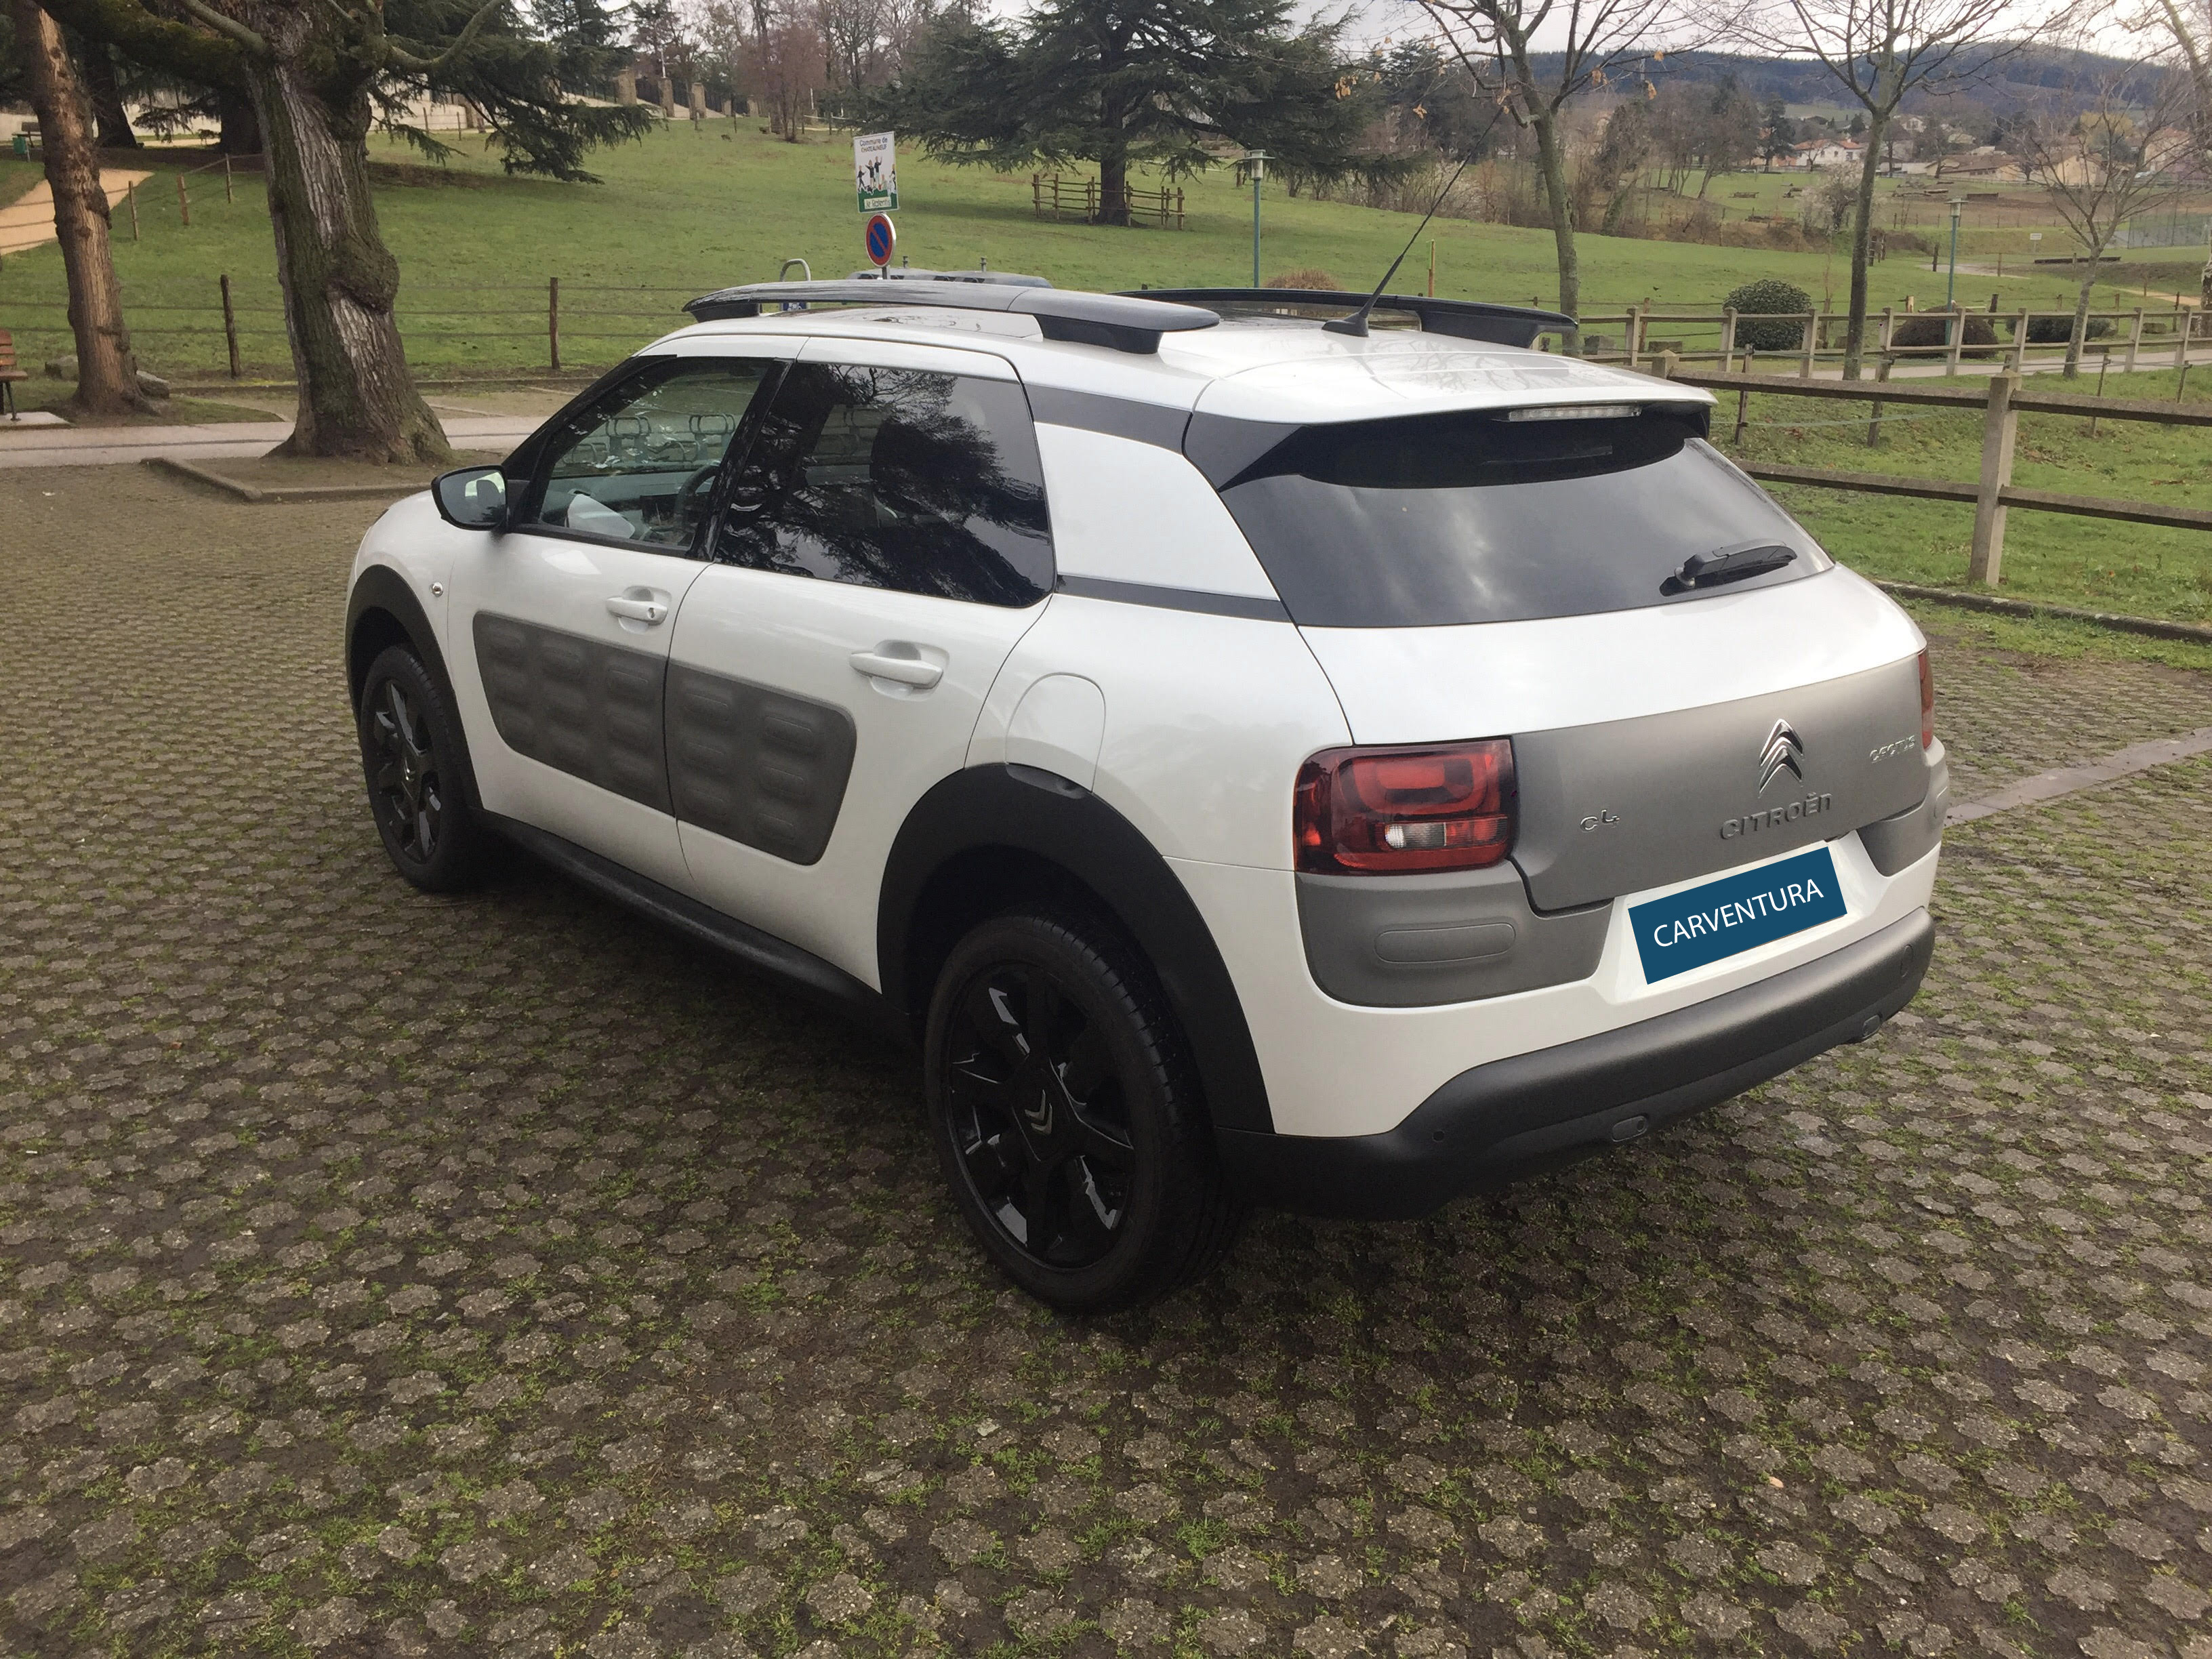 citroen c4 cactus 1 6 bluehdi 100 shine start stop carventura. Black Bedroom Furniture Sets. Home Design Ideas